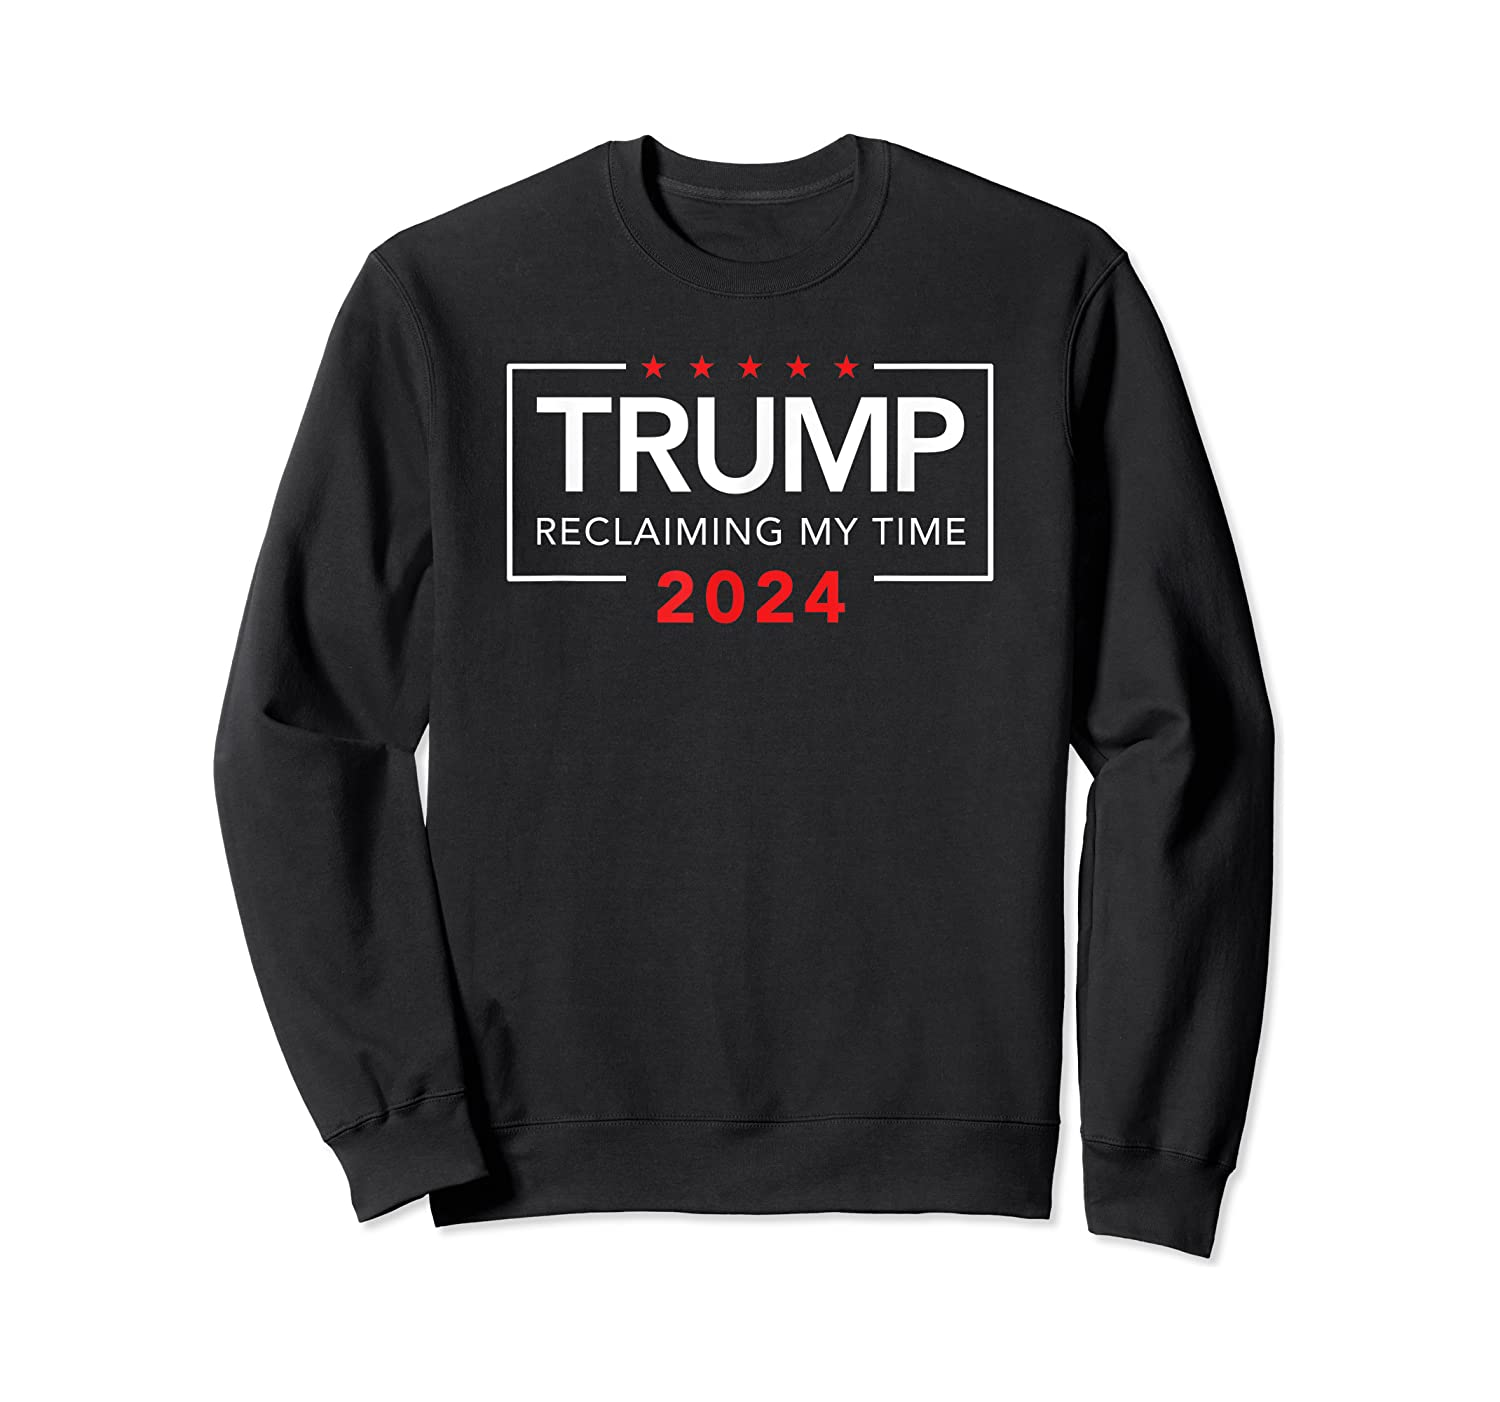 Trump 2024 Reclaiming My Time Funny Political Election T-shirt Crewneck Sweater